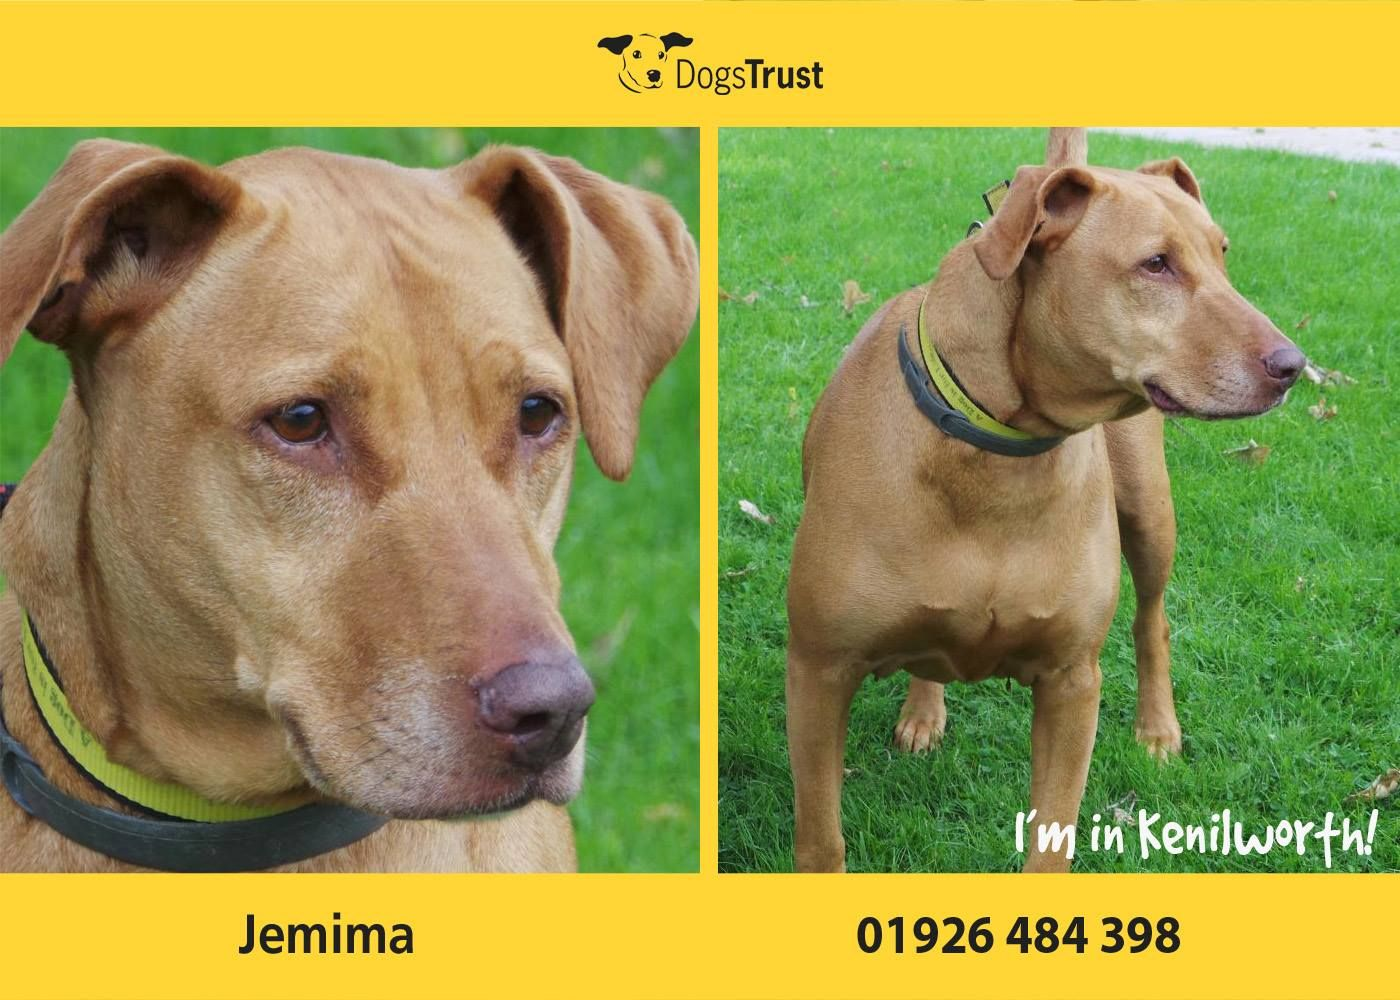 Jemima Here Is A Sensitive Girl From Dogs Trust Kenilworth She Is